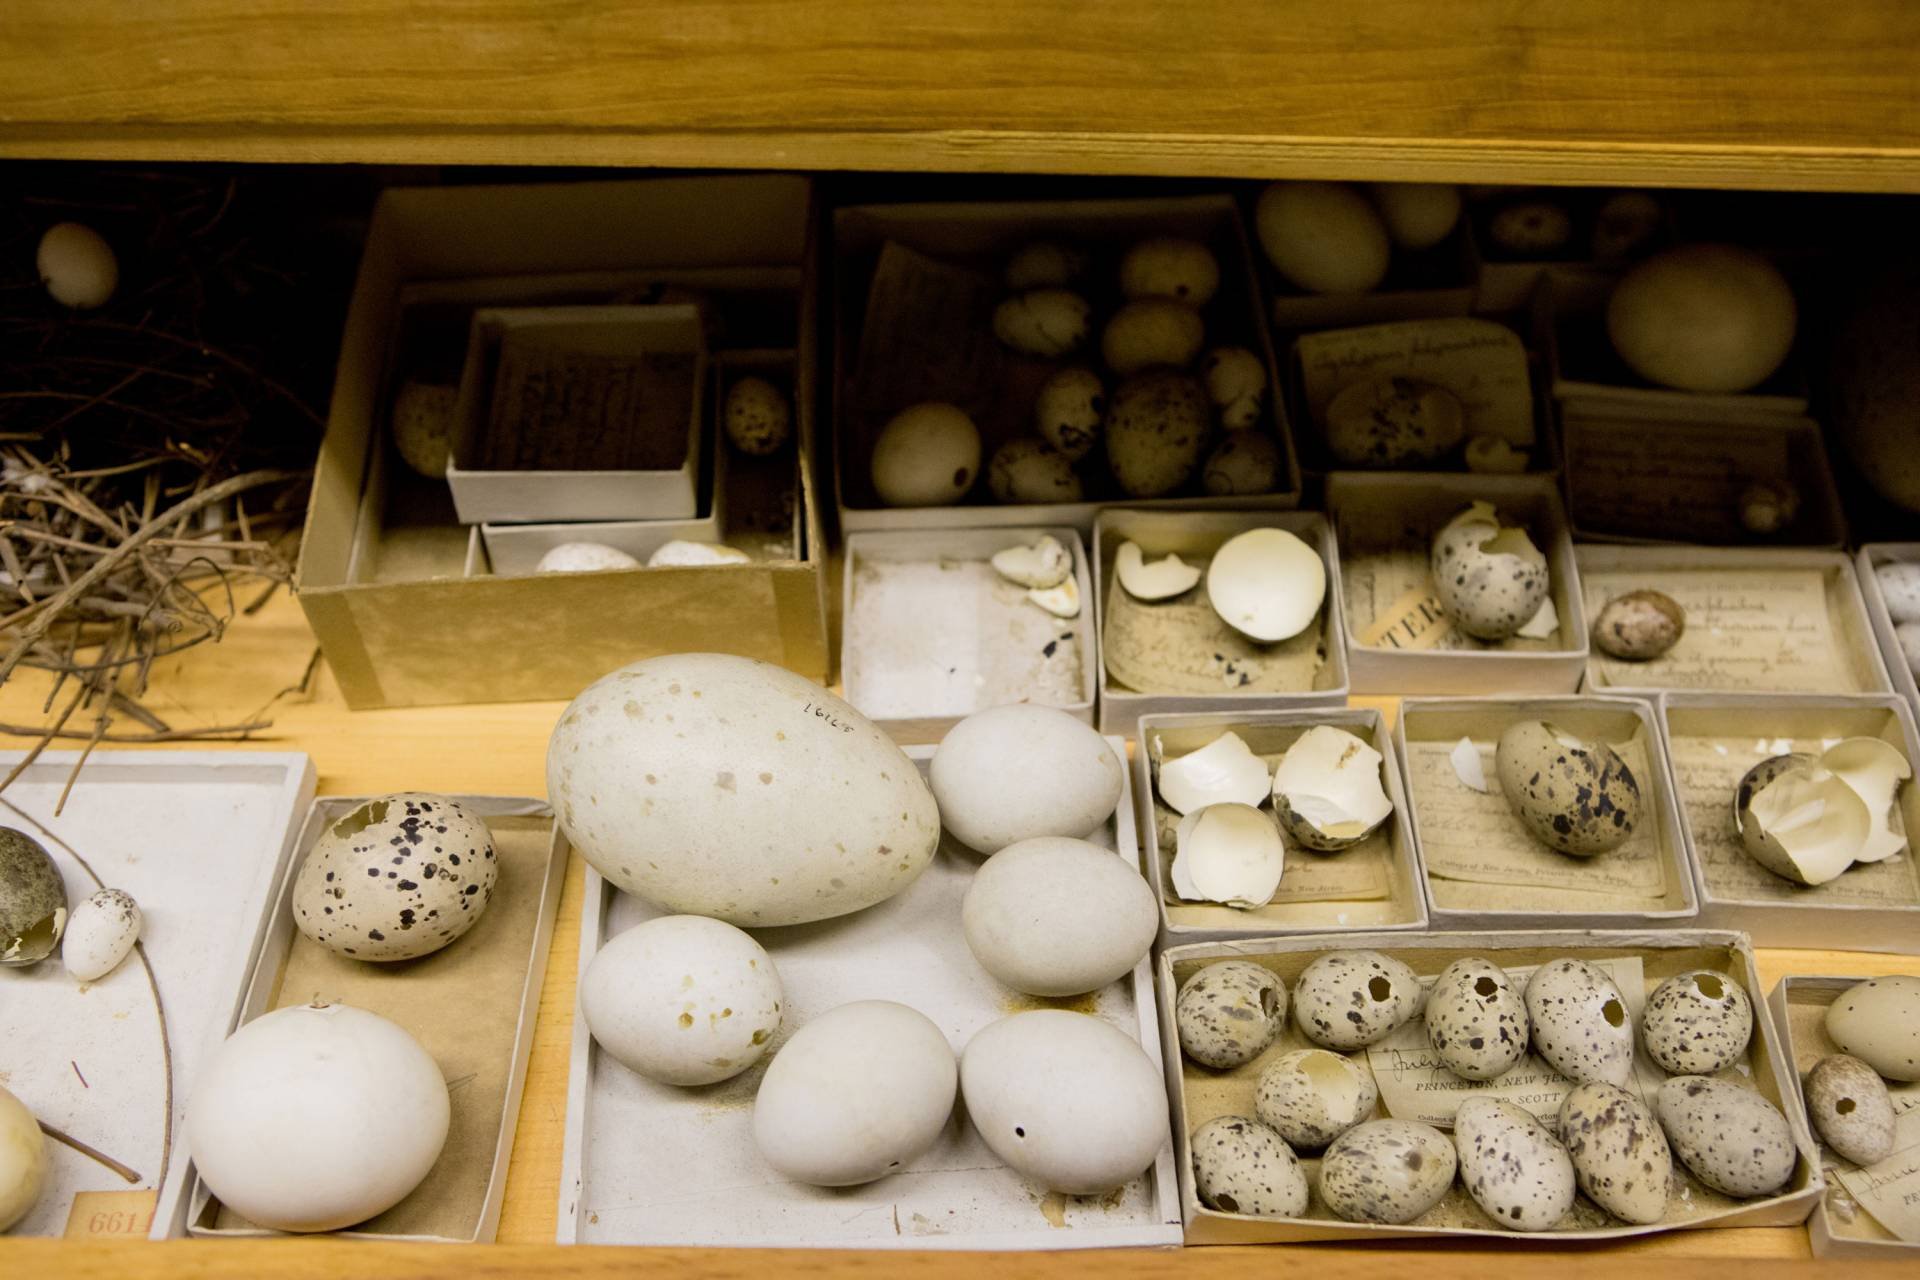 Different-sized eggs sitting in an open drawer